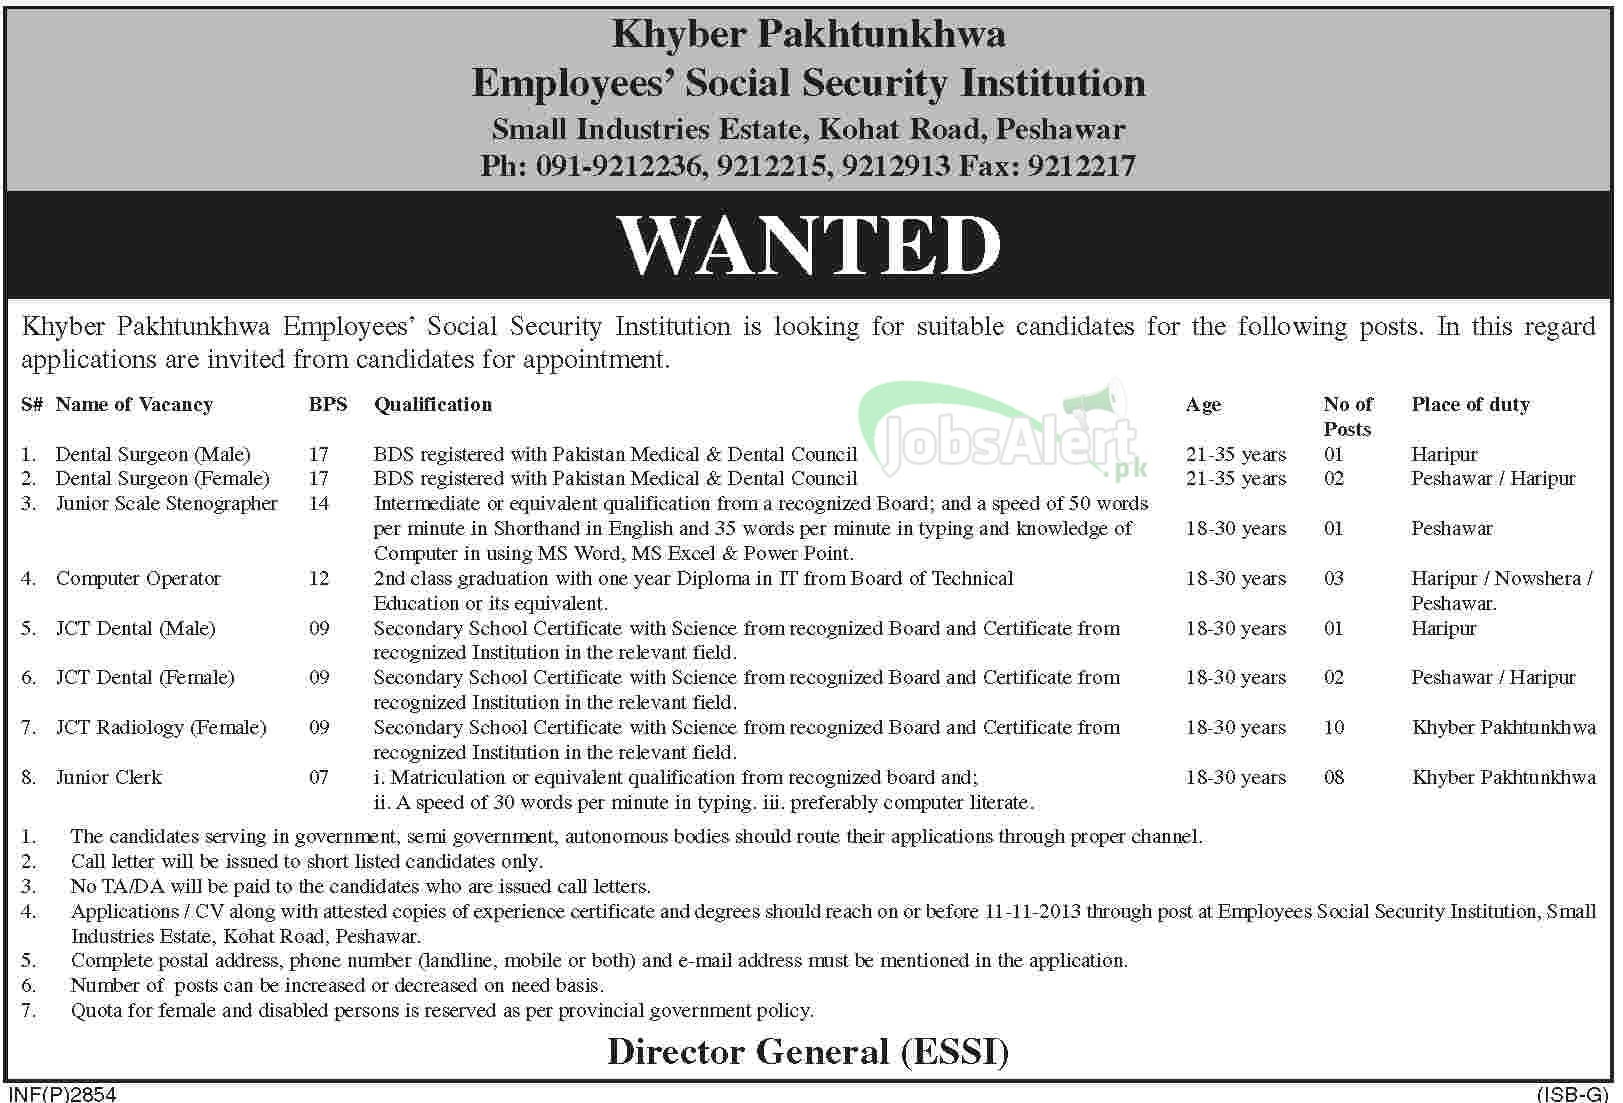 Surgeon, Stenographer & JCT Jobs in KPK Employees Social Security